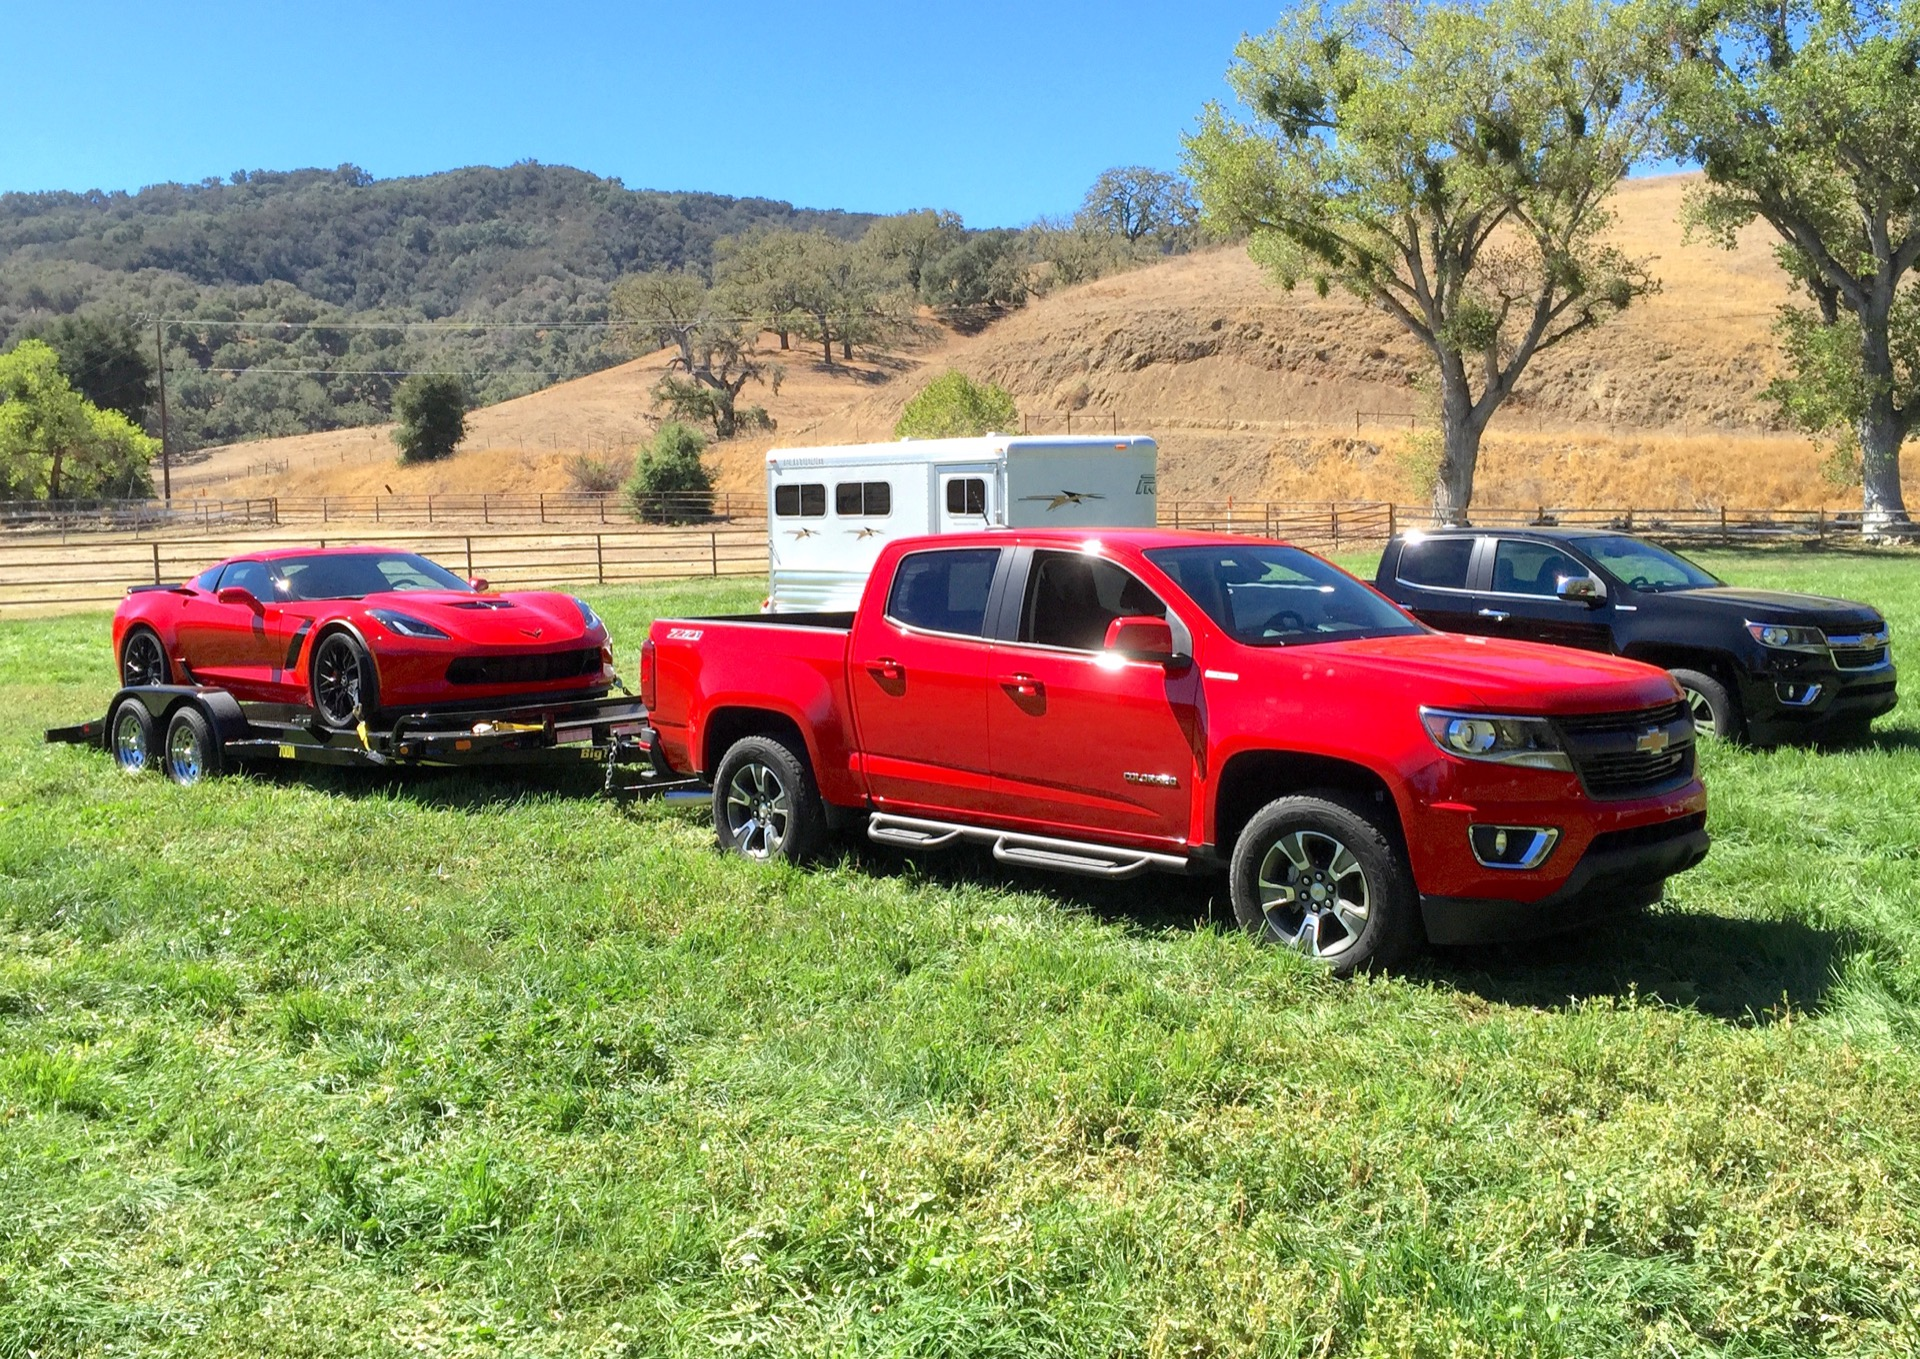 1920 x 1359 jpeg 1126kB, 2016 Chevy Colorado: V-6 Or Duramax Diesel?